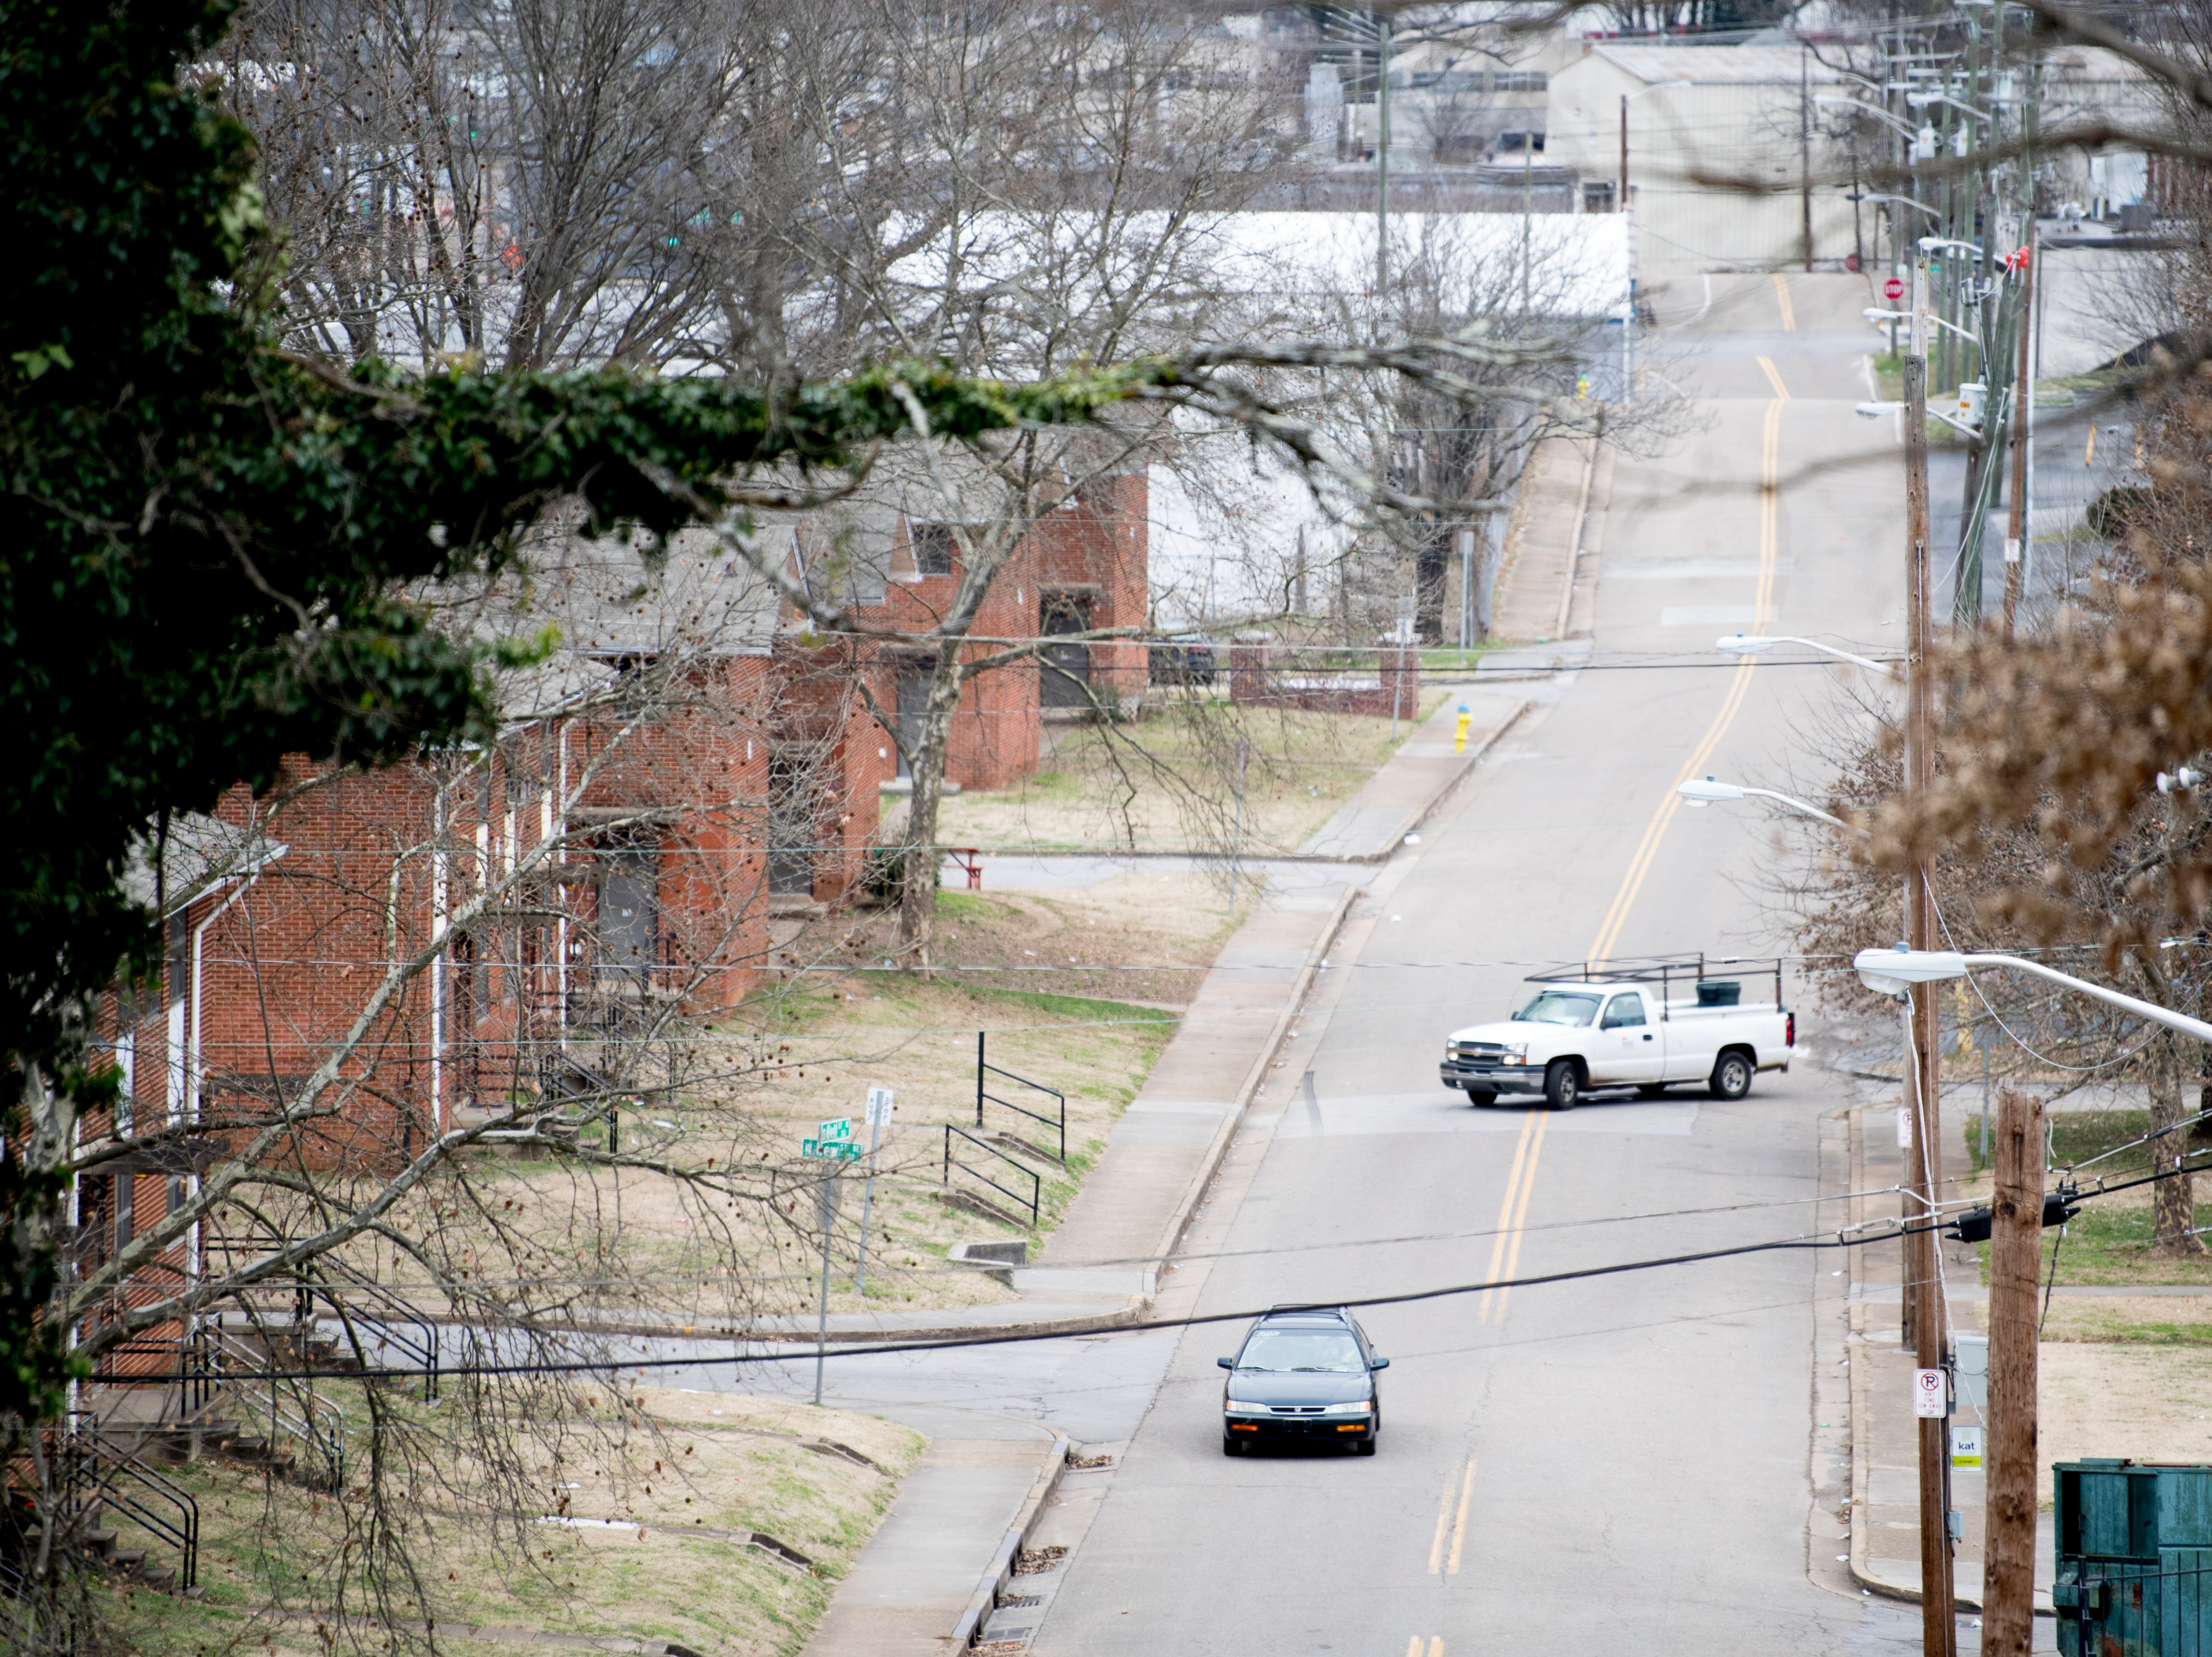 A view down South Bell Street in Austin Homes in Knoxville, Tennessee, on Wednesday, January 23, 2019. Knoxville's Community Development Corporation (KCDC) plans a revitalization of the site into a residential neighborhood with potential for affordable, workforce and market-rate housing units, as well as other appropriate non-residential uses.